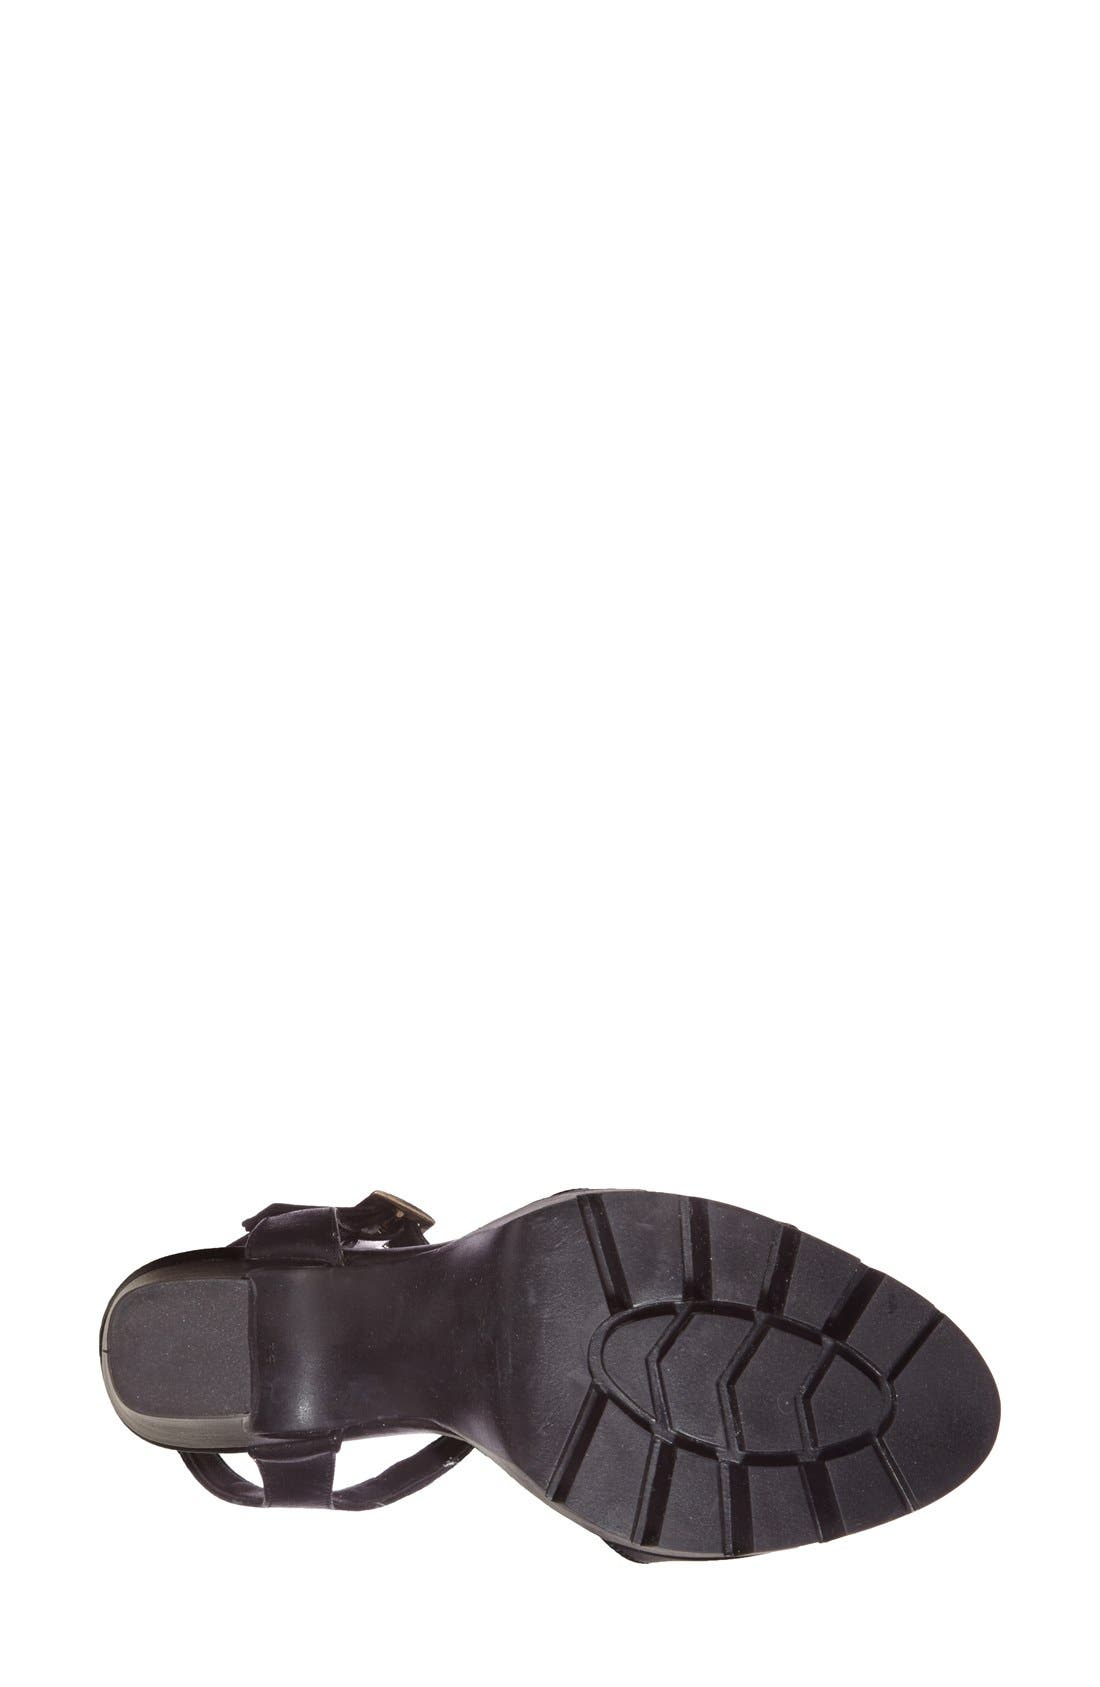 Alternate Image 4  - Steve Madden 'Traiin' Platform Sandal (Women)